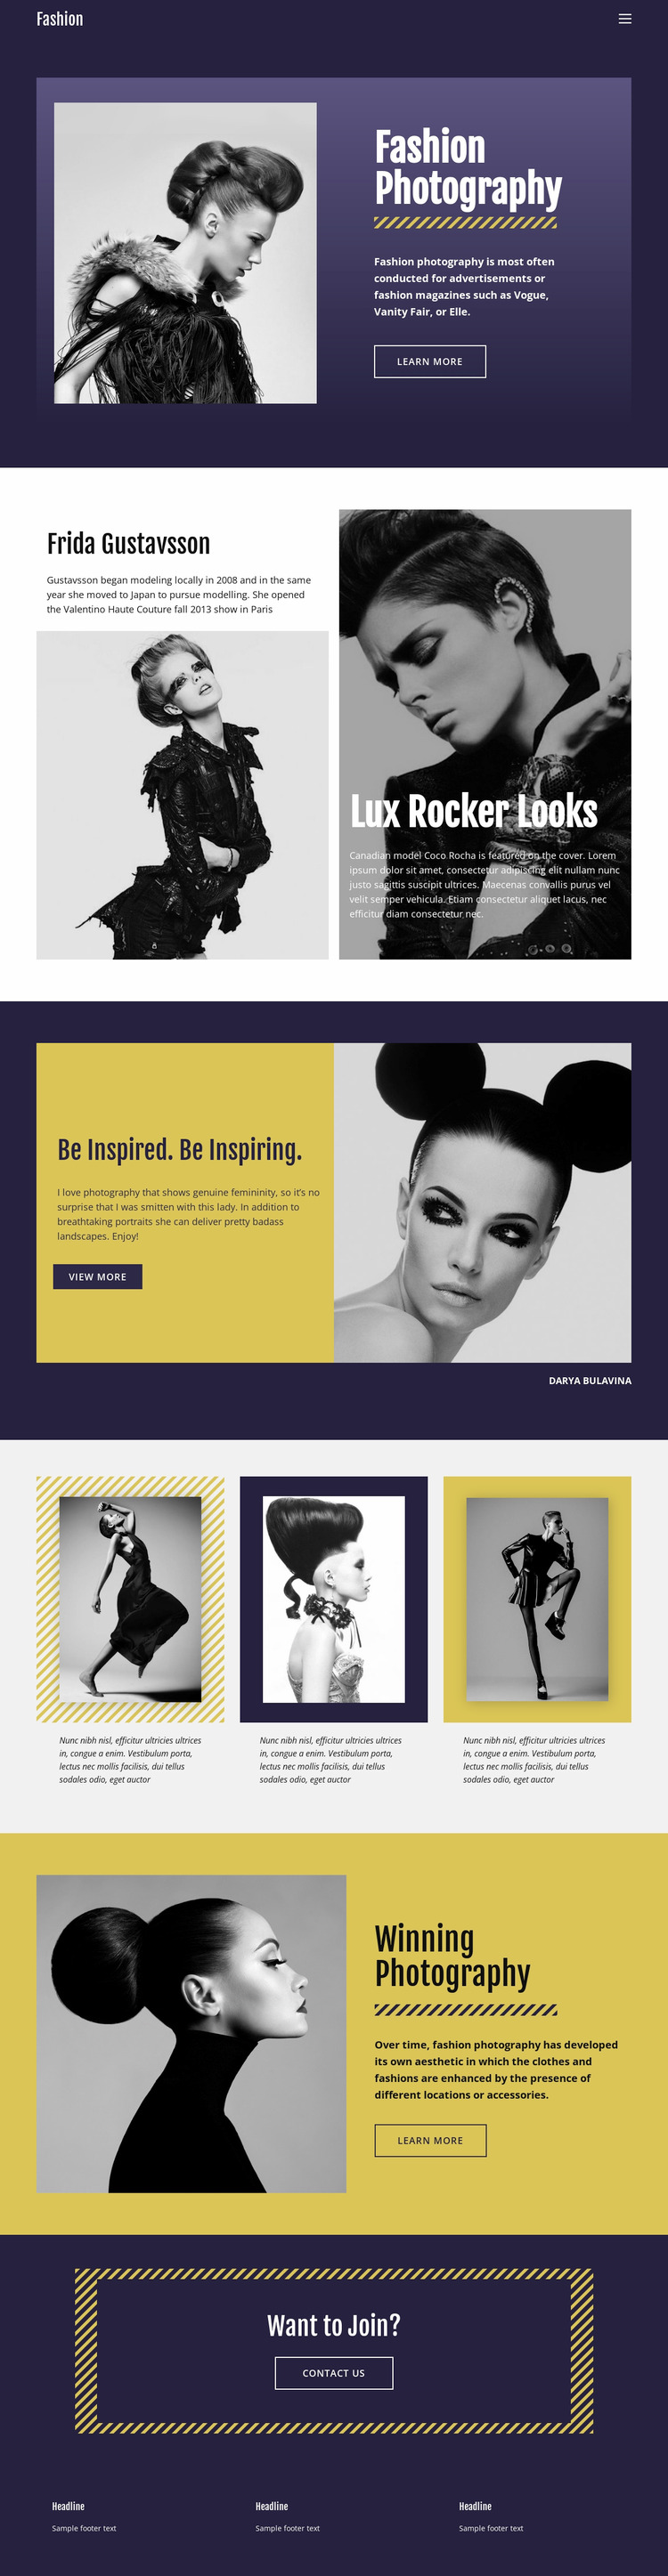 Fashion Photography Classic Style WordPress Website Builder